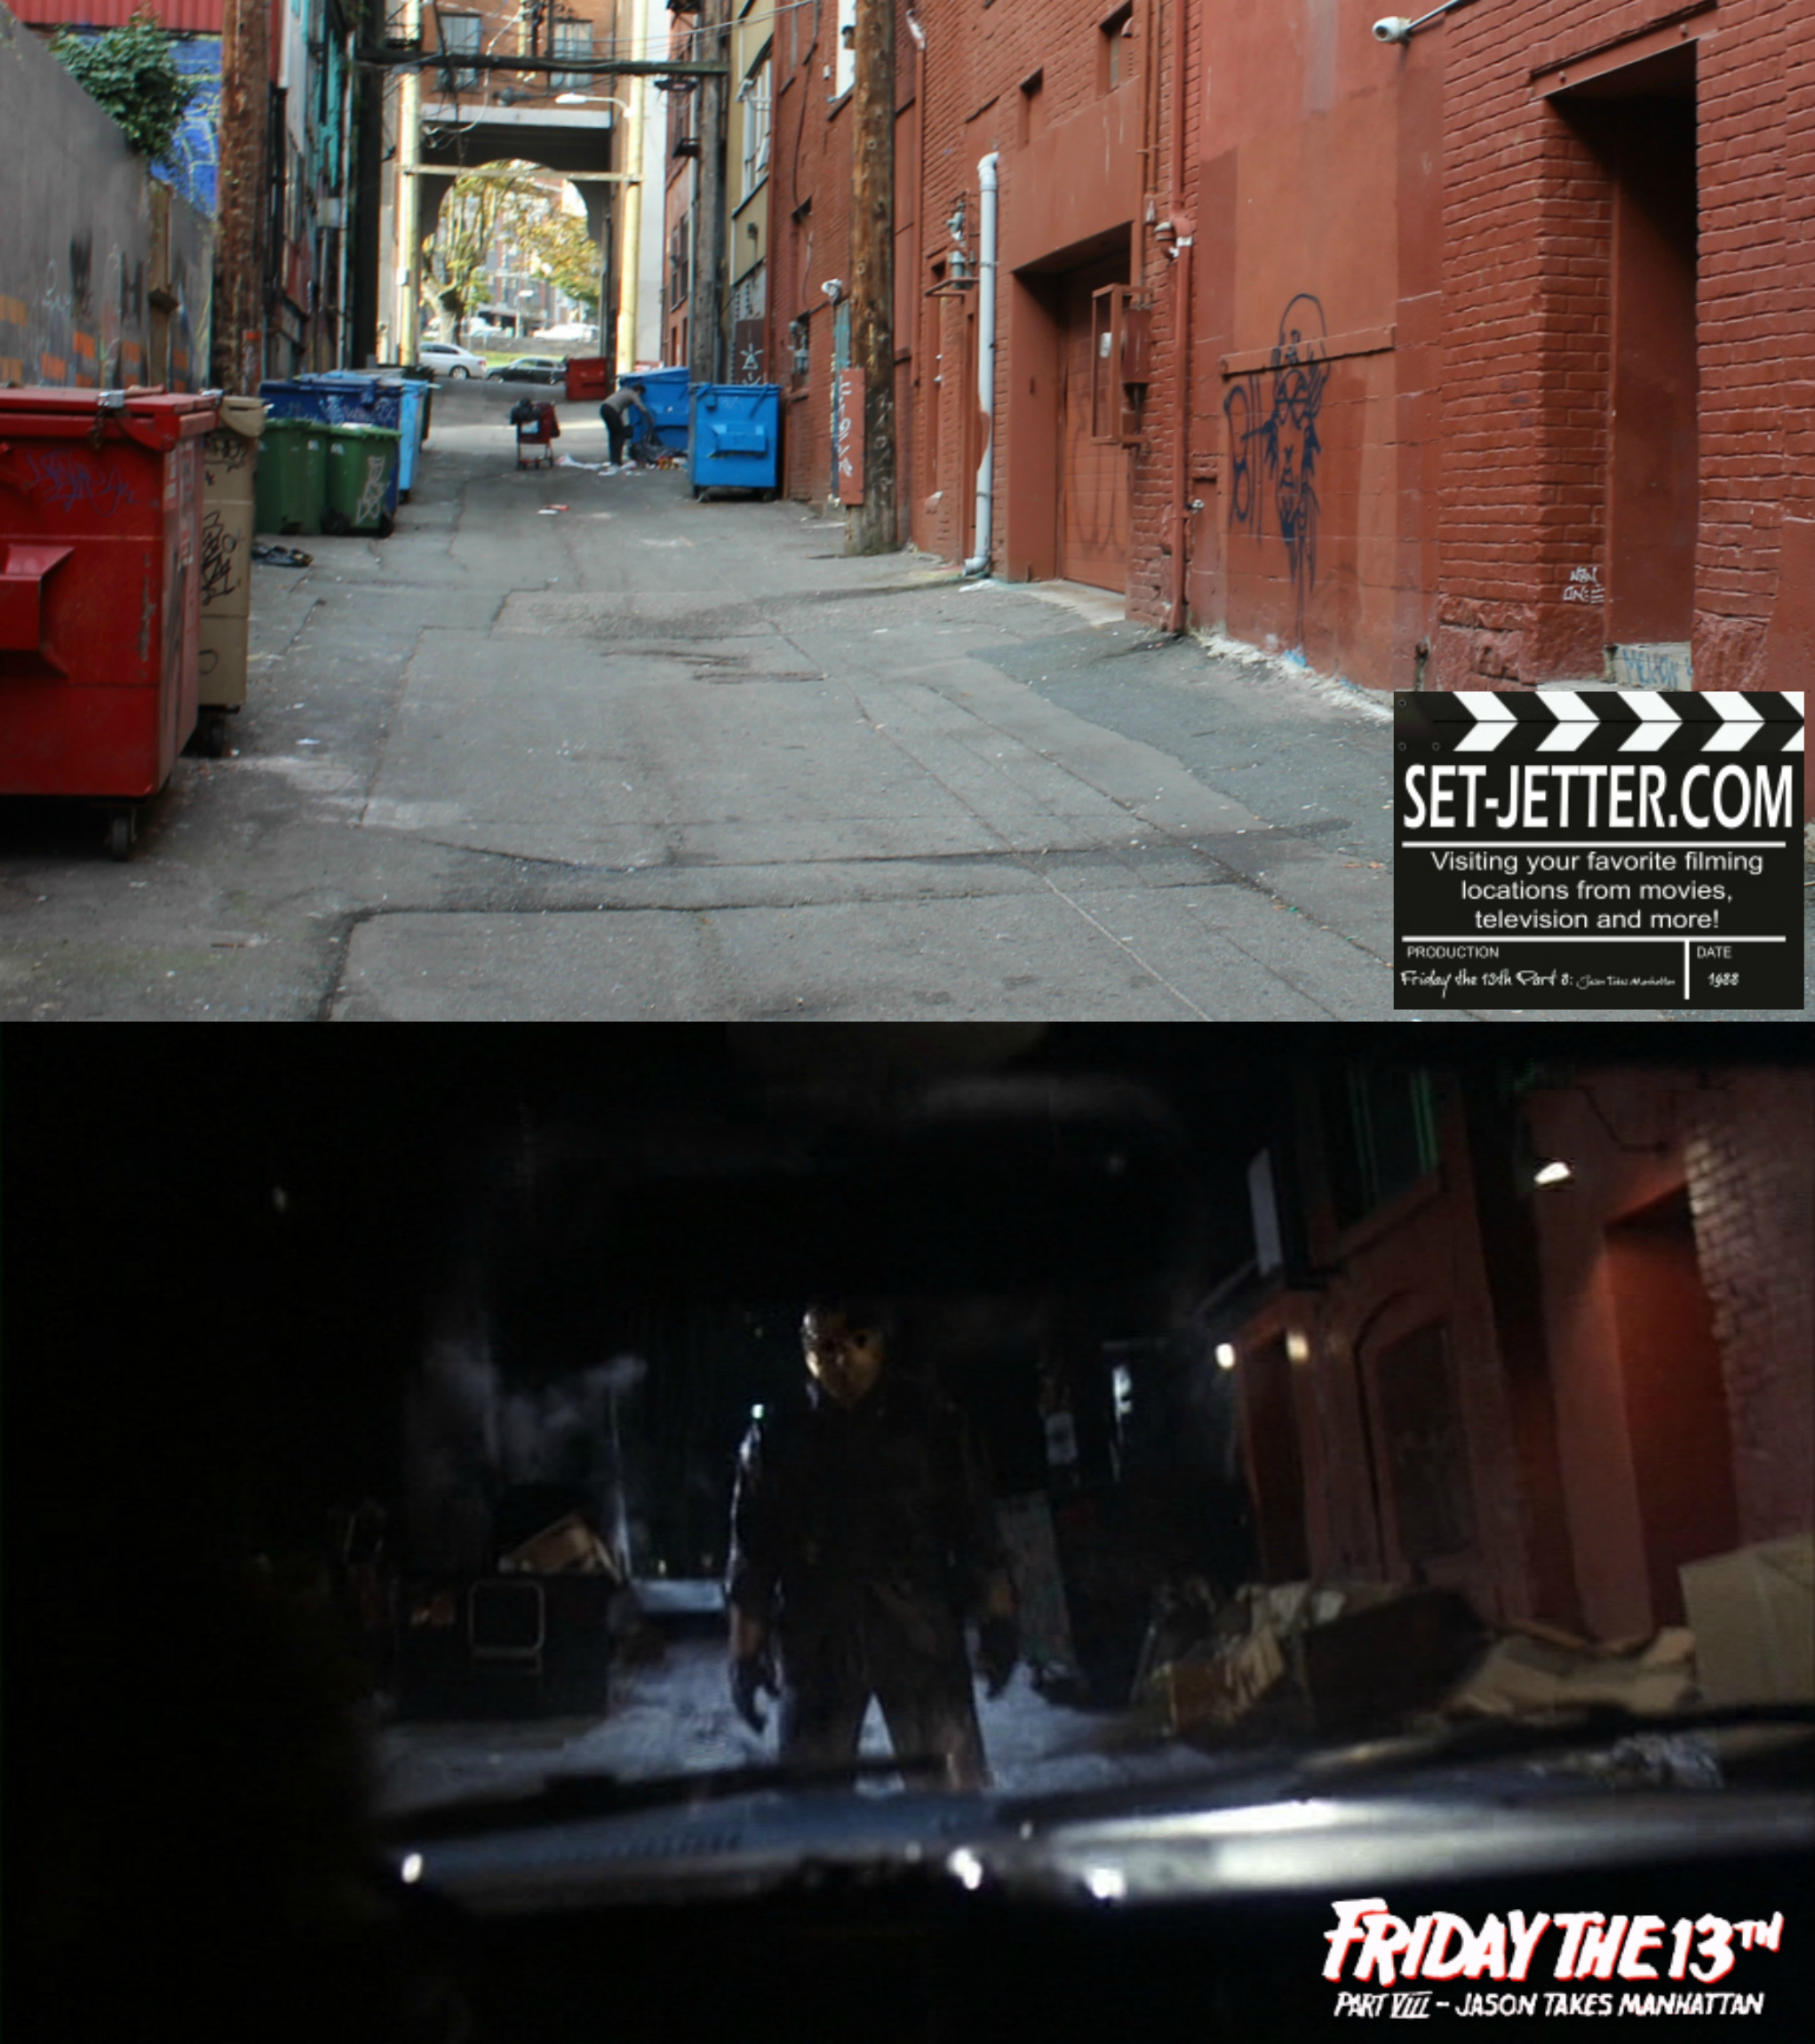 Friday the 13th Part 8 comparison 46.jpg